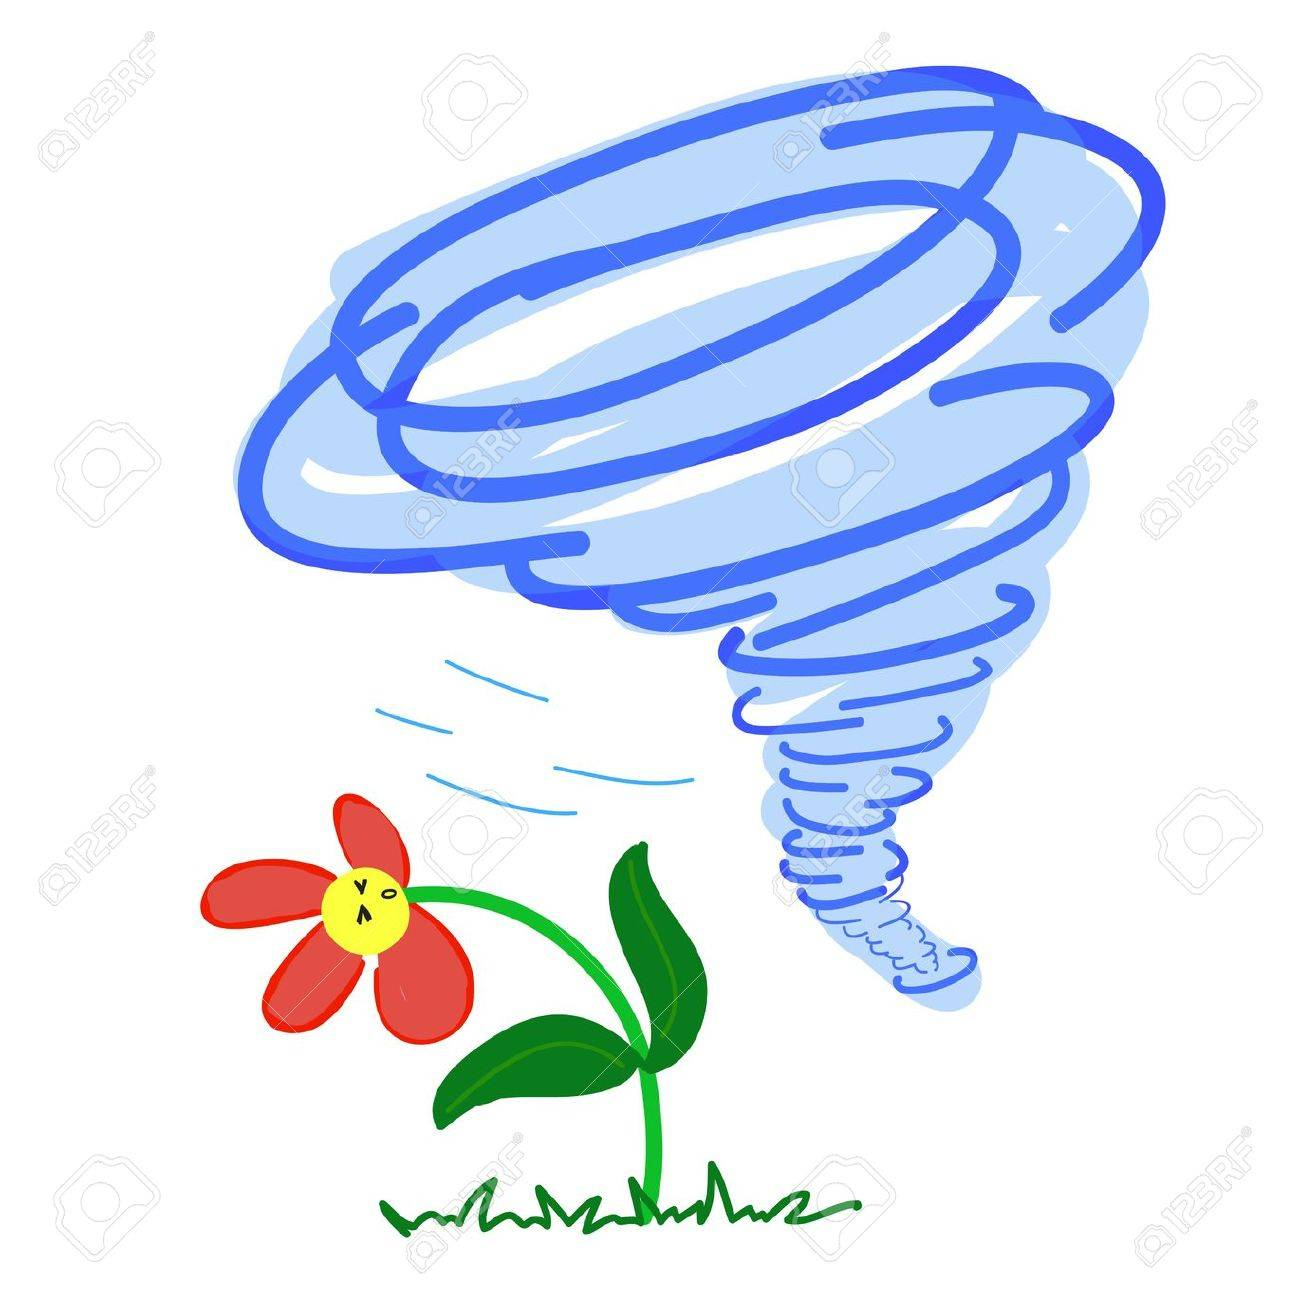 Flower in a Storm on White background Stock Vector - 19533304